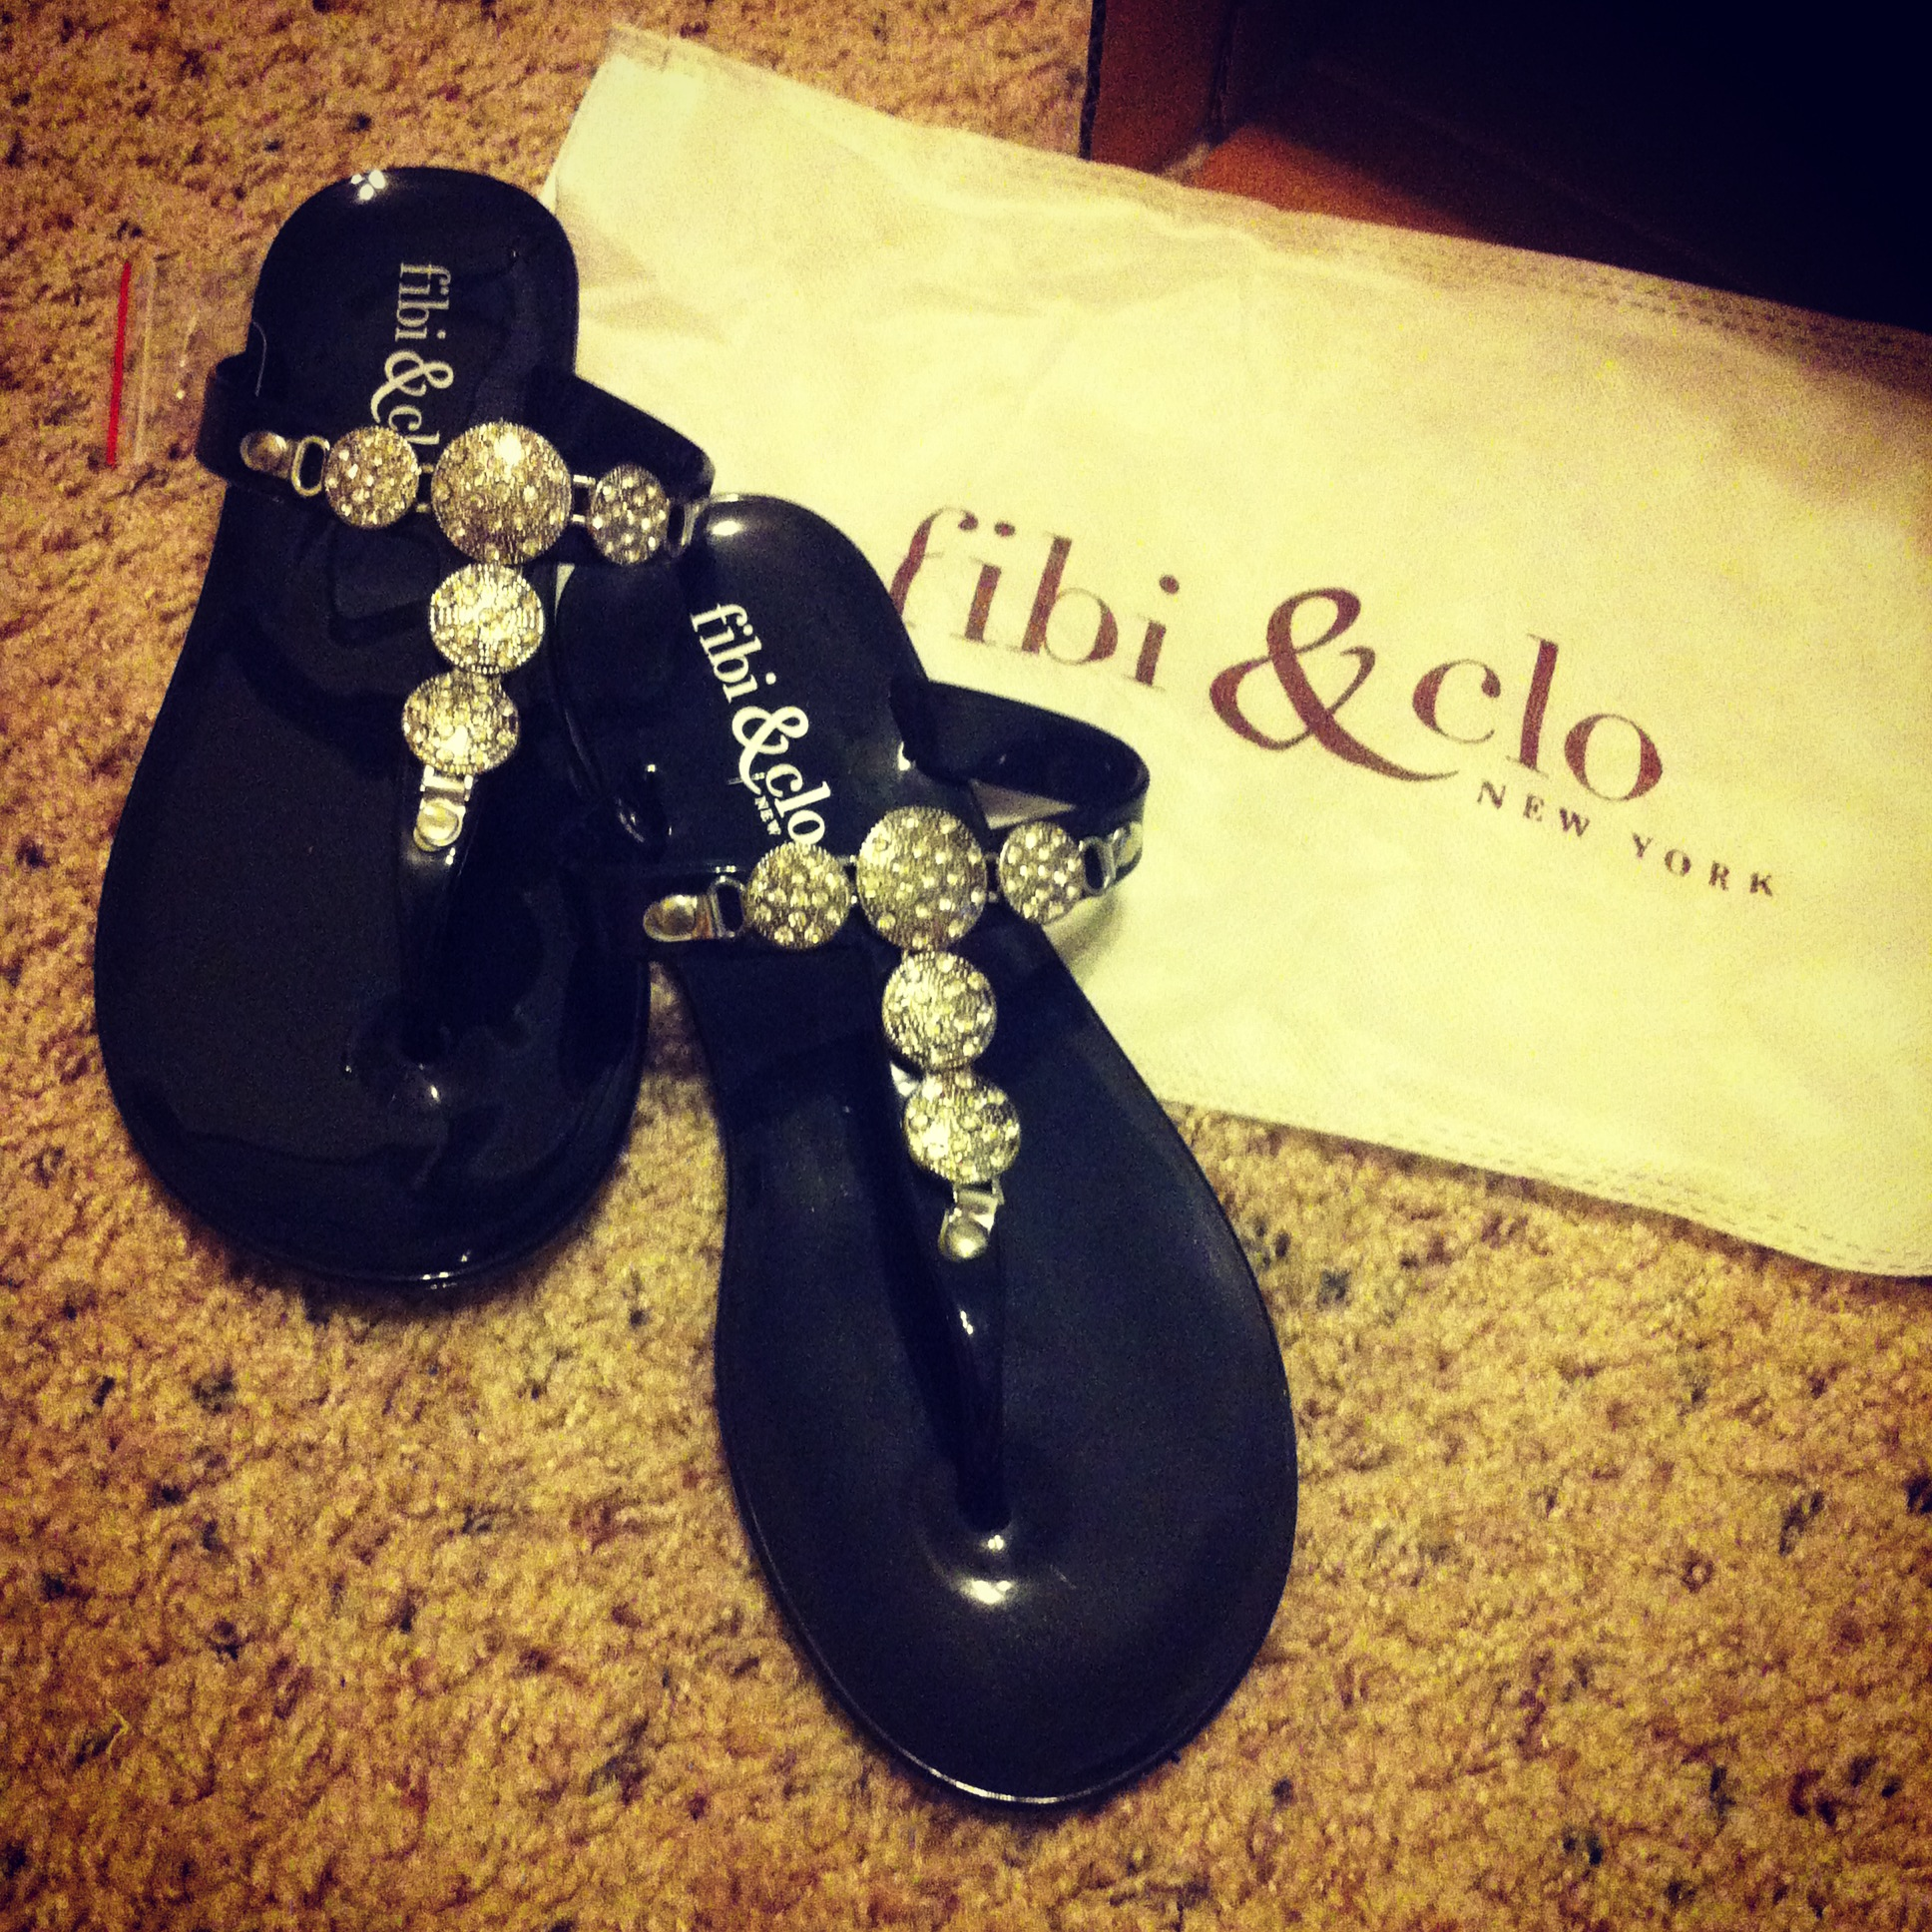 229ea2cdbfa0 These sandals are the perfect mix between casual and dressy. They re a very  simple style